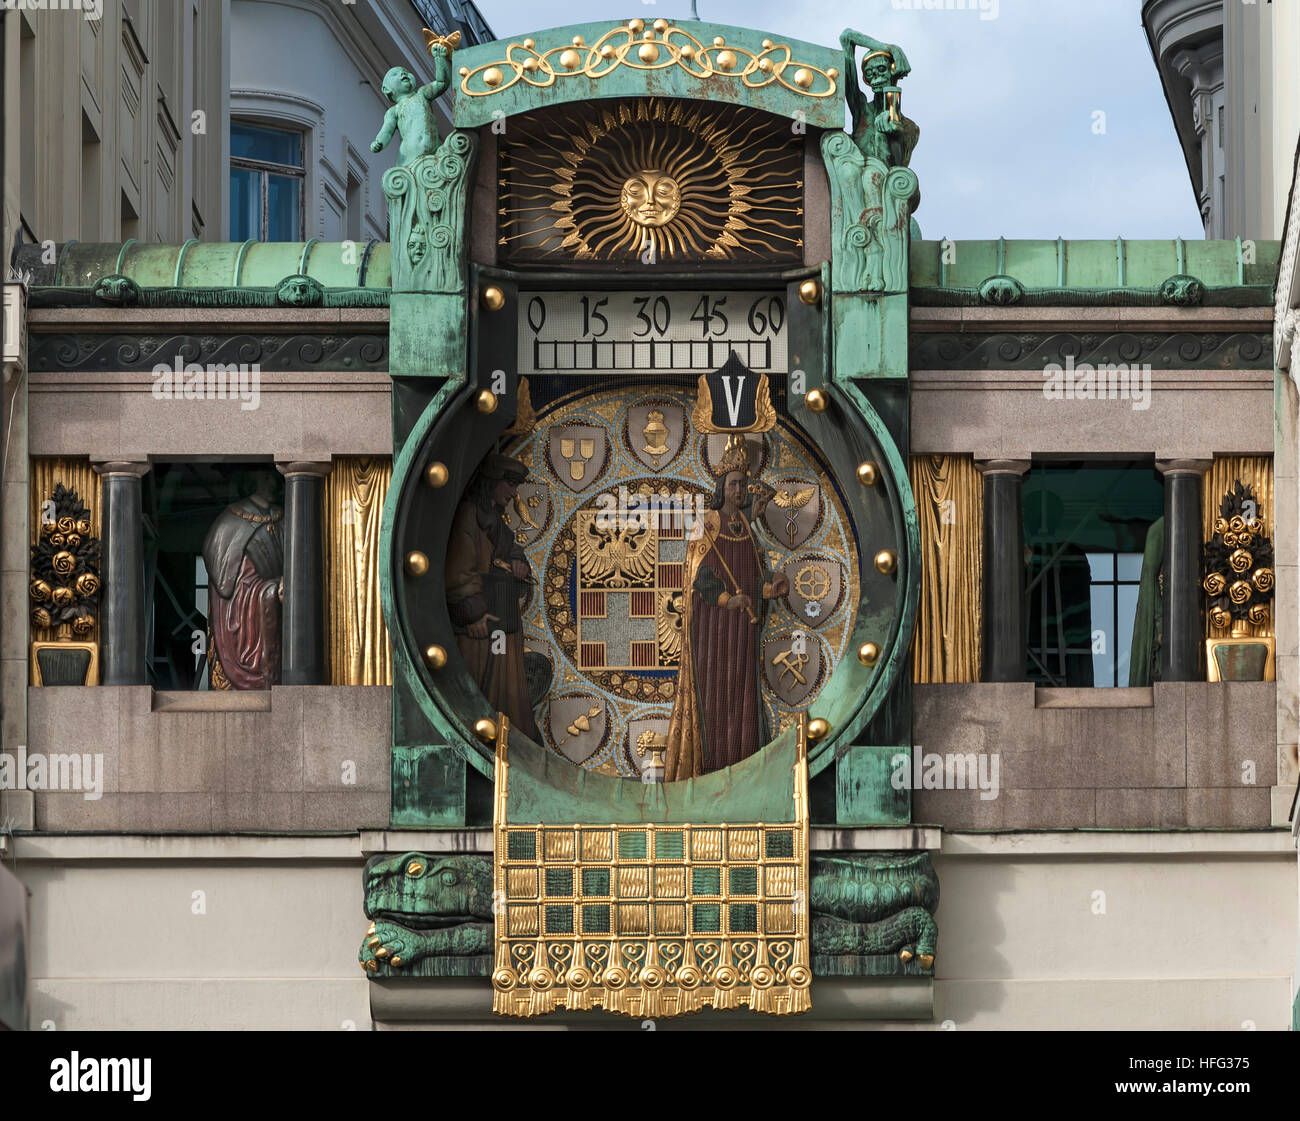 Ankeruhr Clock, large music box, art nouveau, painter, artist, designed by Franz Matsch, inaugurated in 1915, High Stock Photo